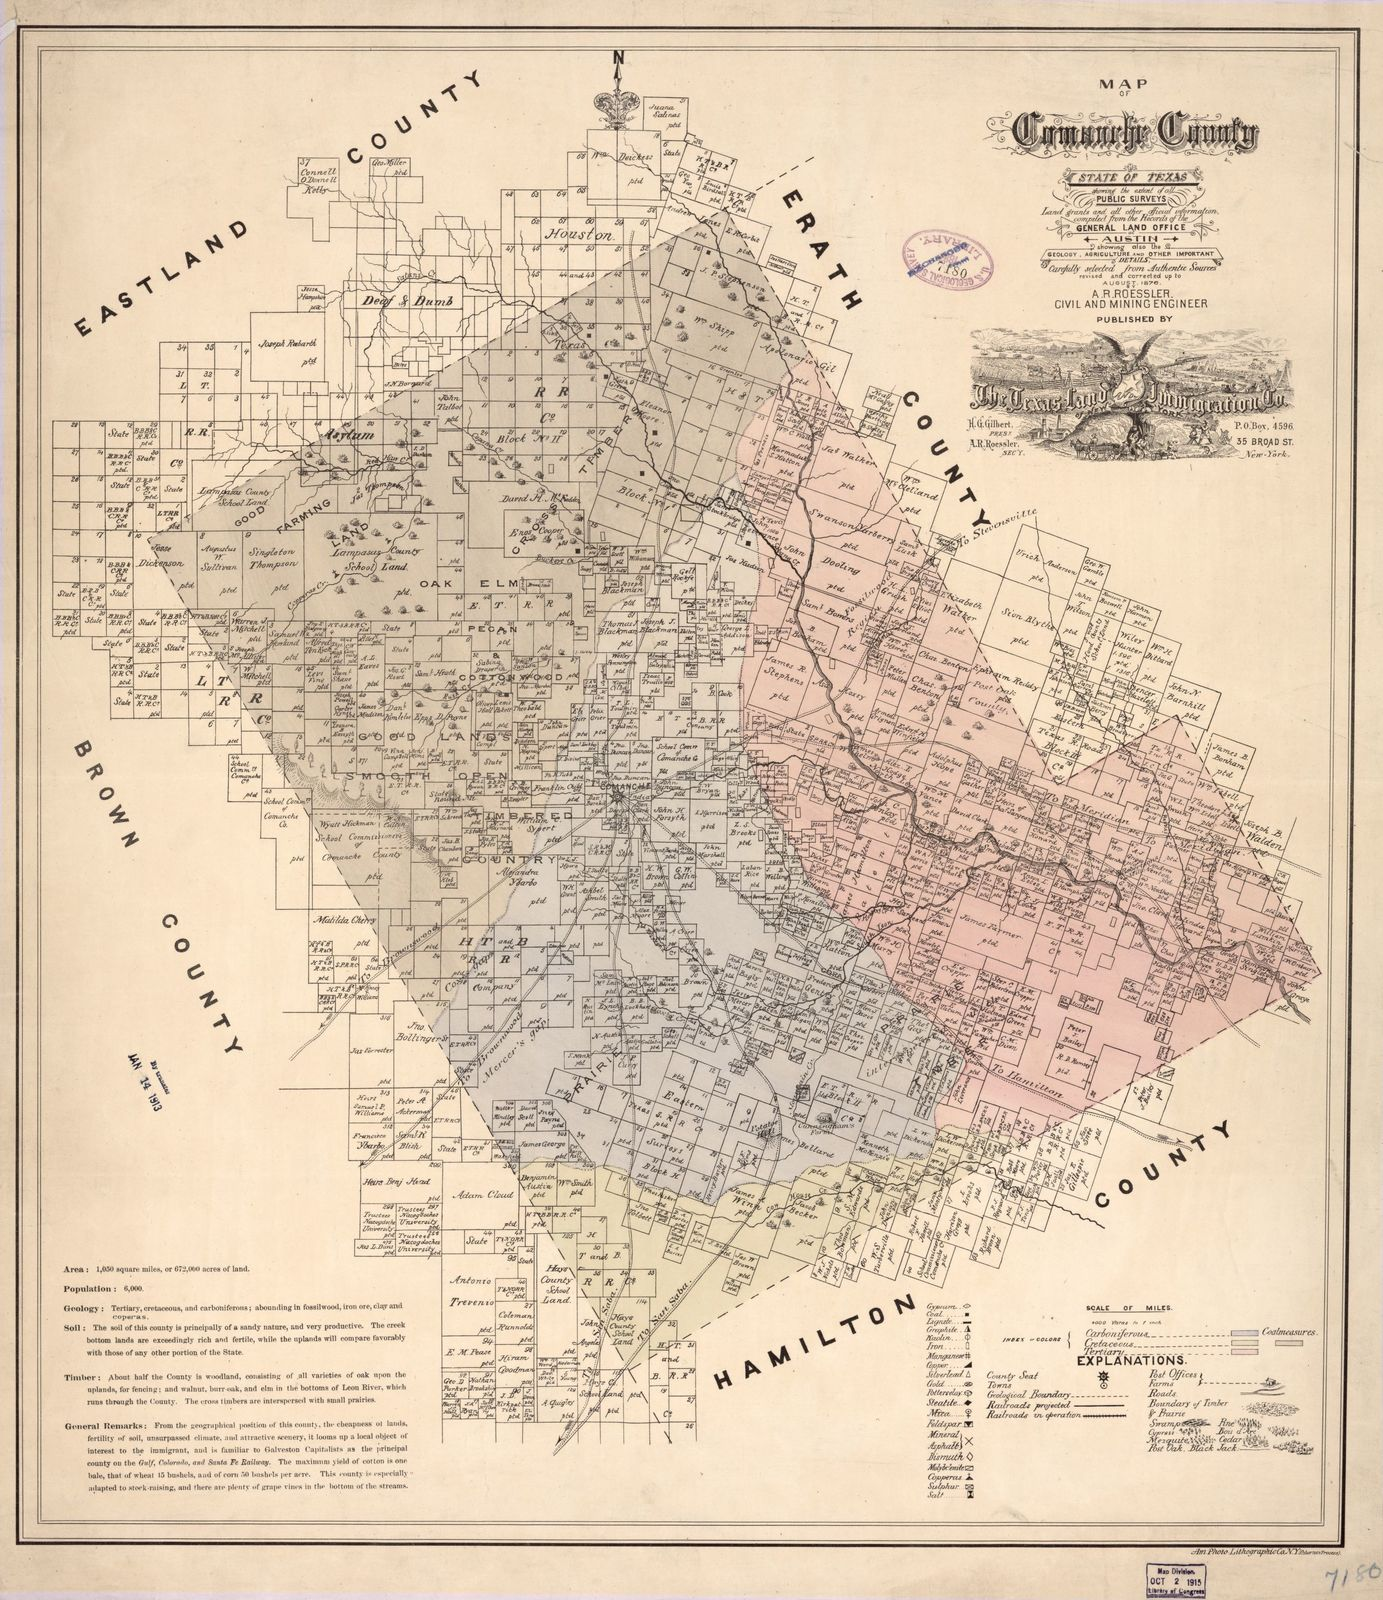 Map of Comanche County : state of Texas showing the extent of all public surveys, land grants and all other official information, compiled from the records of the General Land office at Austin, showing also the geology, agriculture and other important details carefully selected from authentic sources /